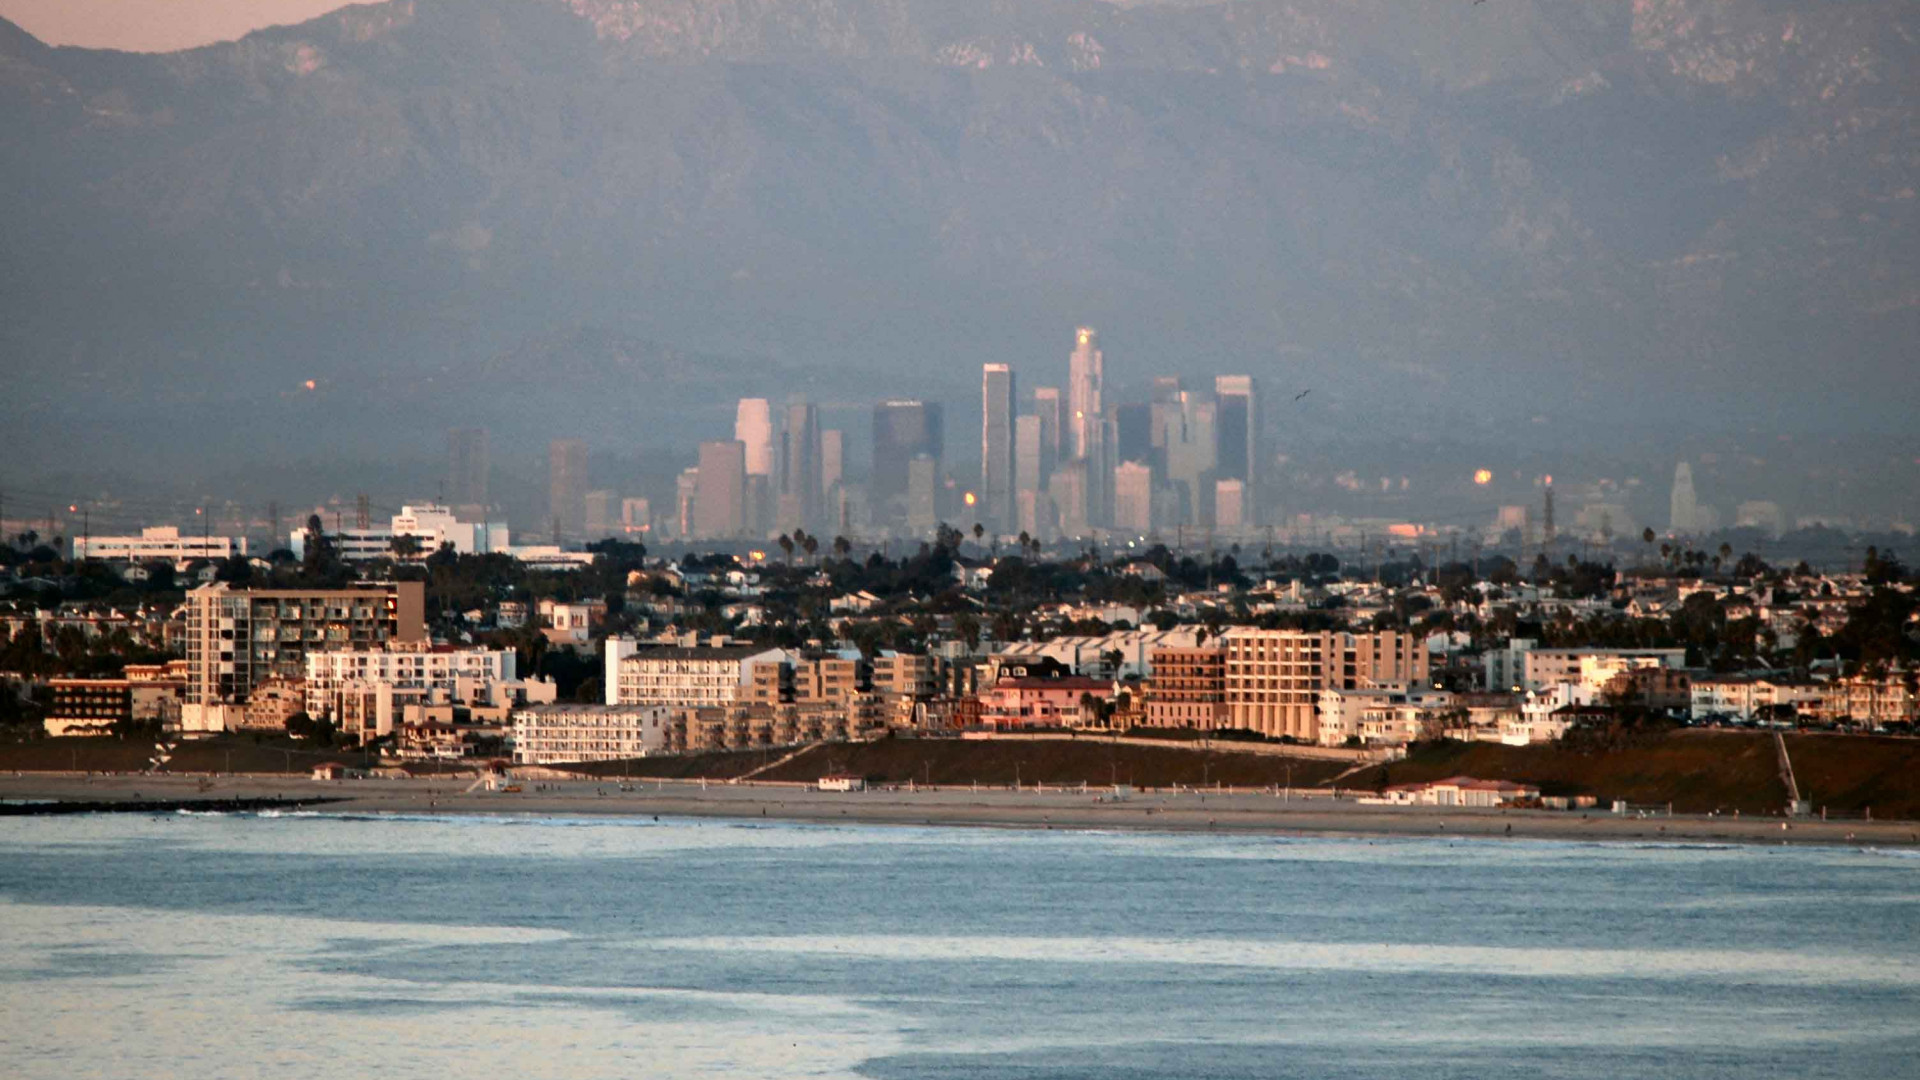 View of Downtown from Redondo Beach LR